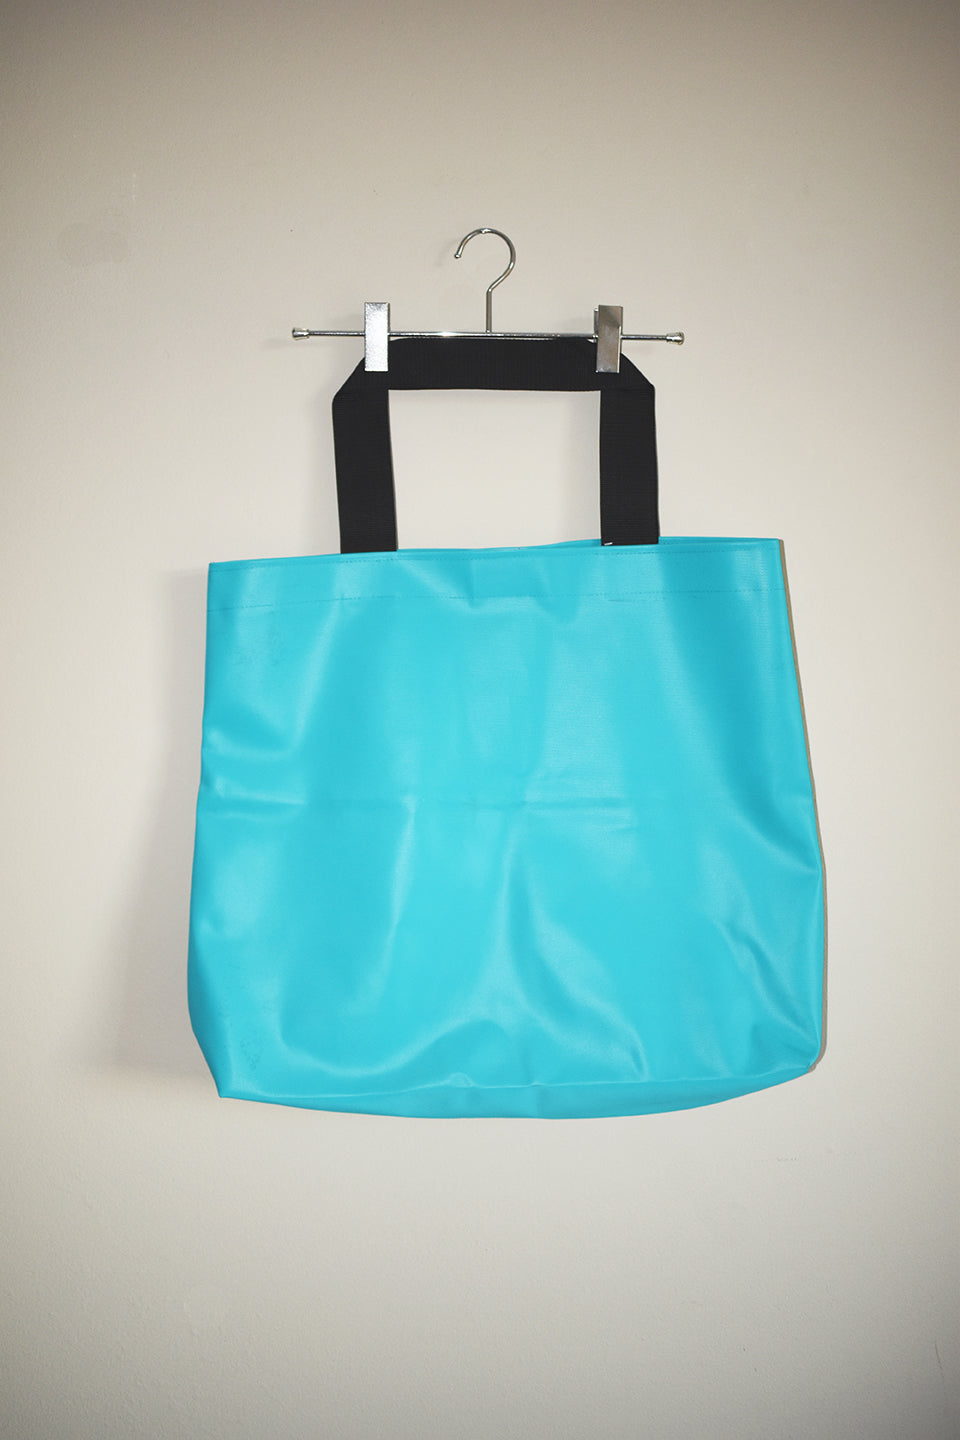 Load image into Gallery viewer, Jumbo Rubber Bag - Turquoise